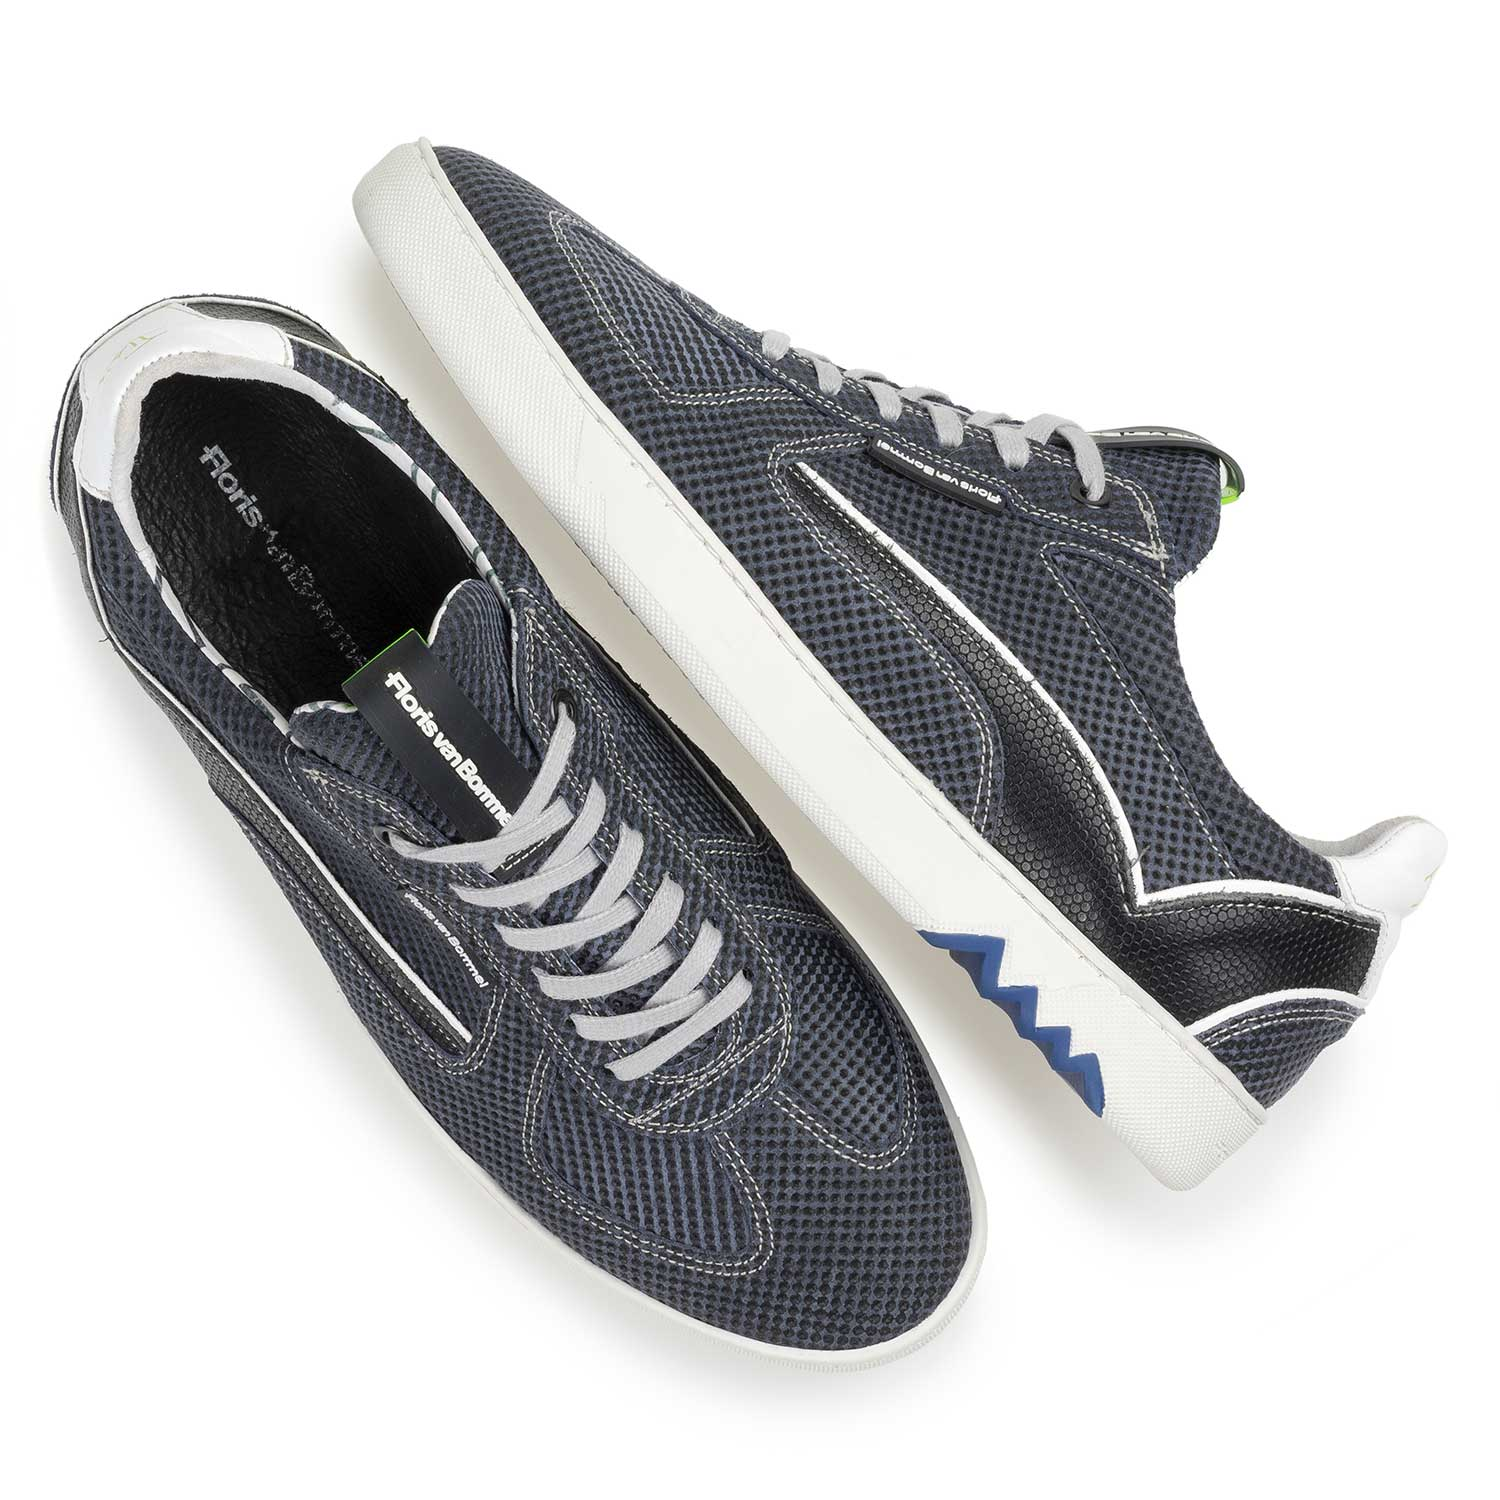 16342/01 - Dark blue suede leather sneaker